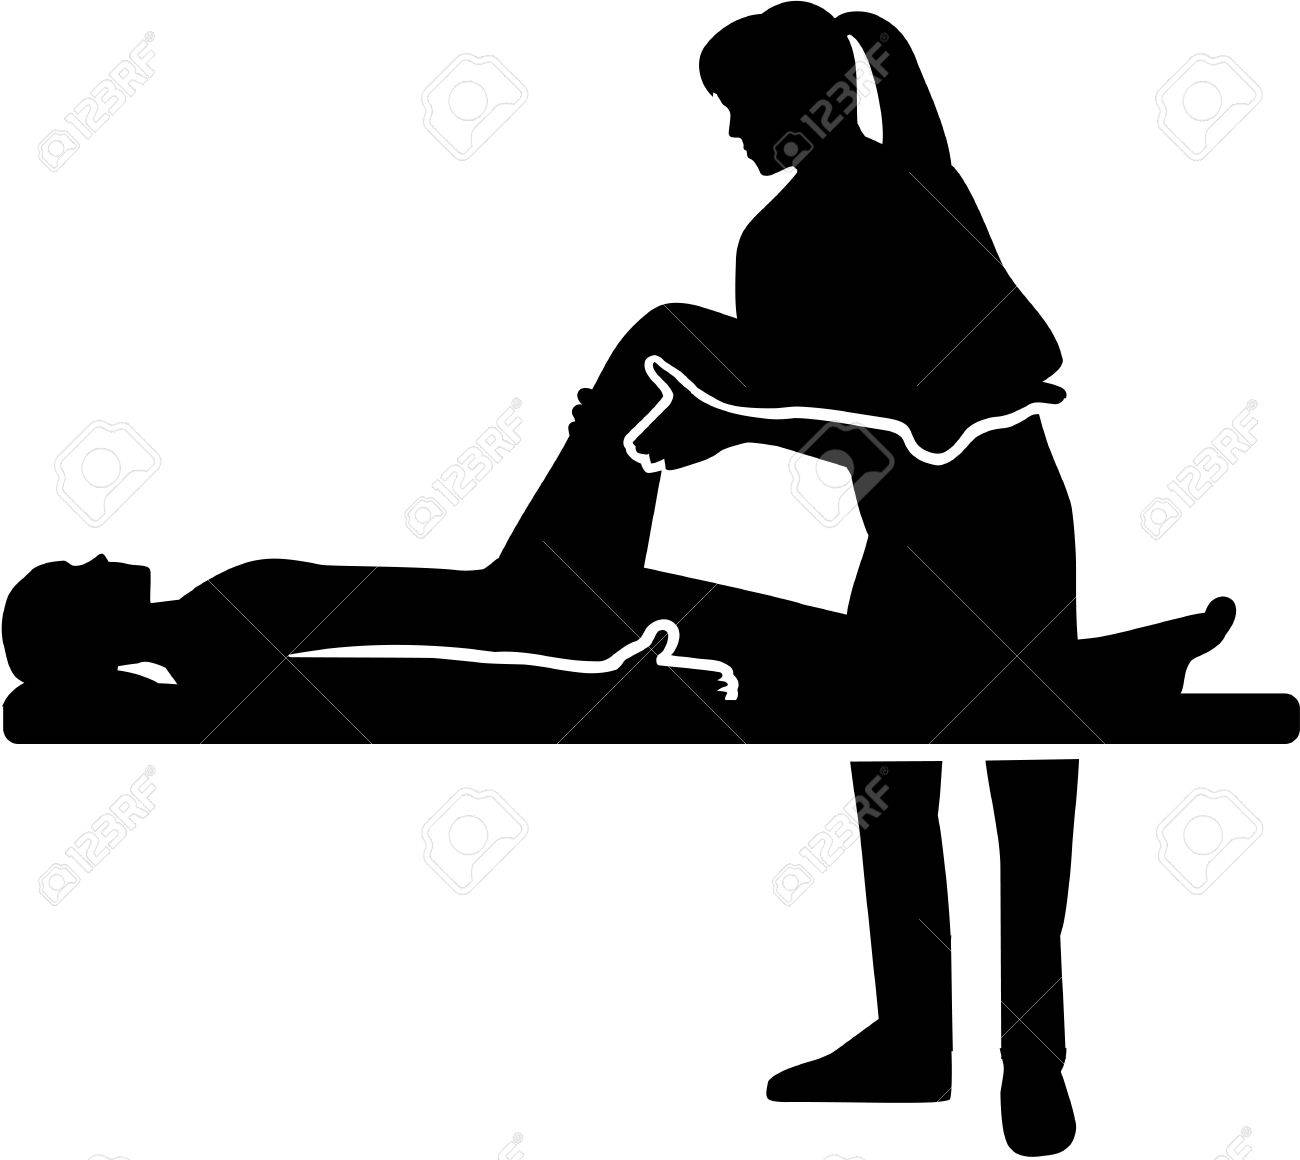 Female Physical therapist - 69035026